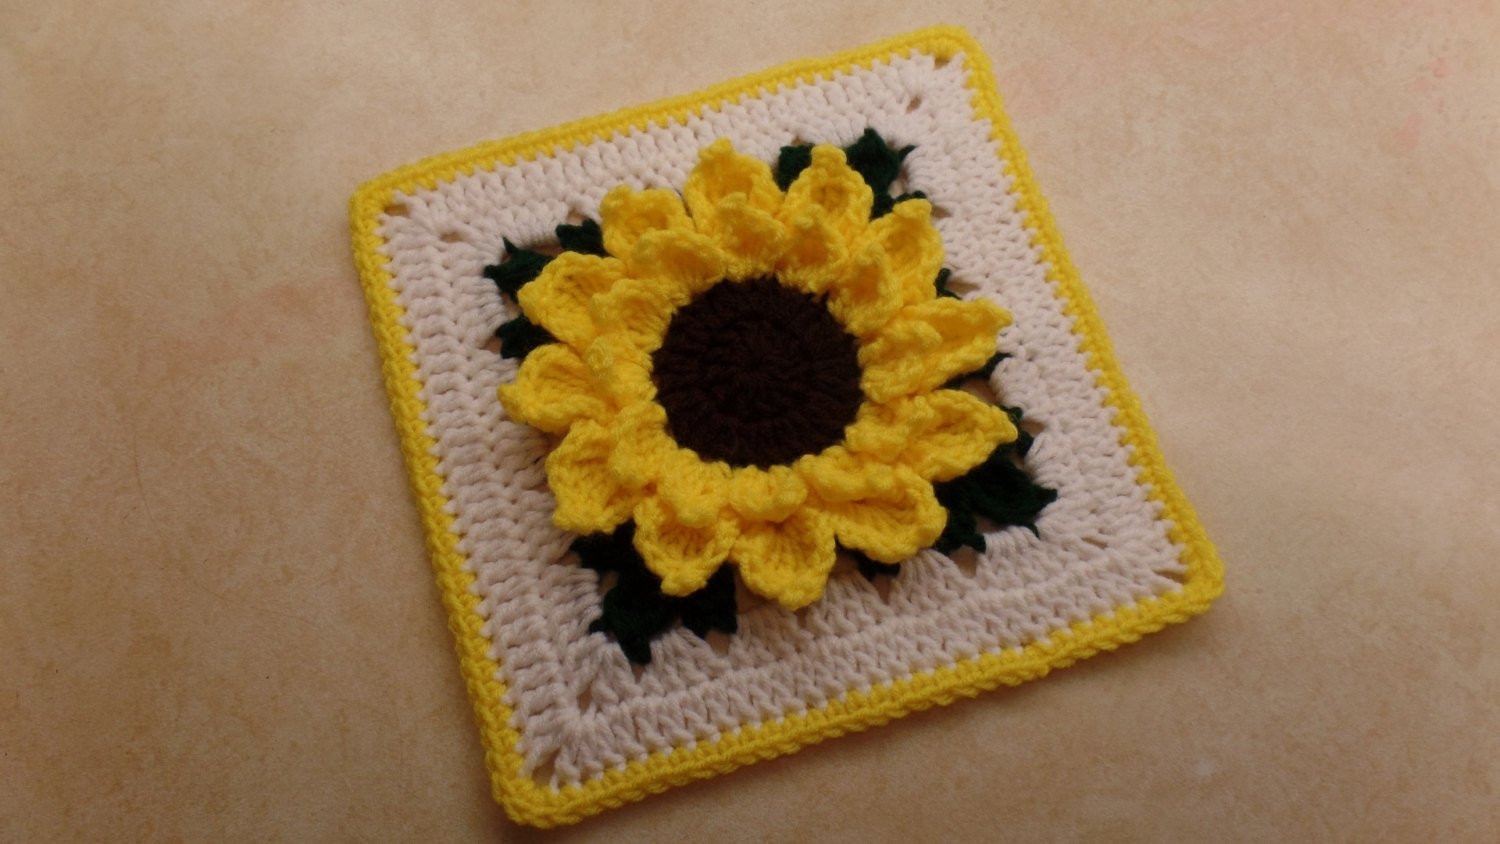 Fresh Crochet 10 Sunflower Granny Square Pattern Digital Sunflower Crochet Blanket Of Elegant Hand Crocheted Sunflower Granny Square Blanket Afghan Throw Sunflower Crochet Blanket